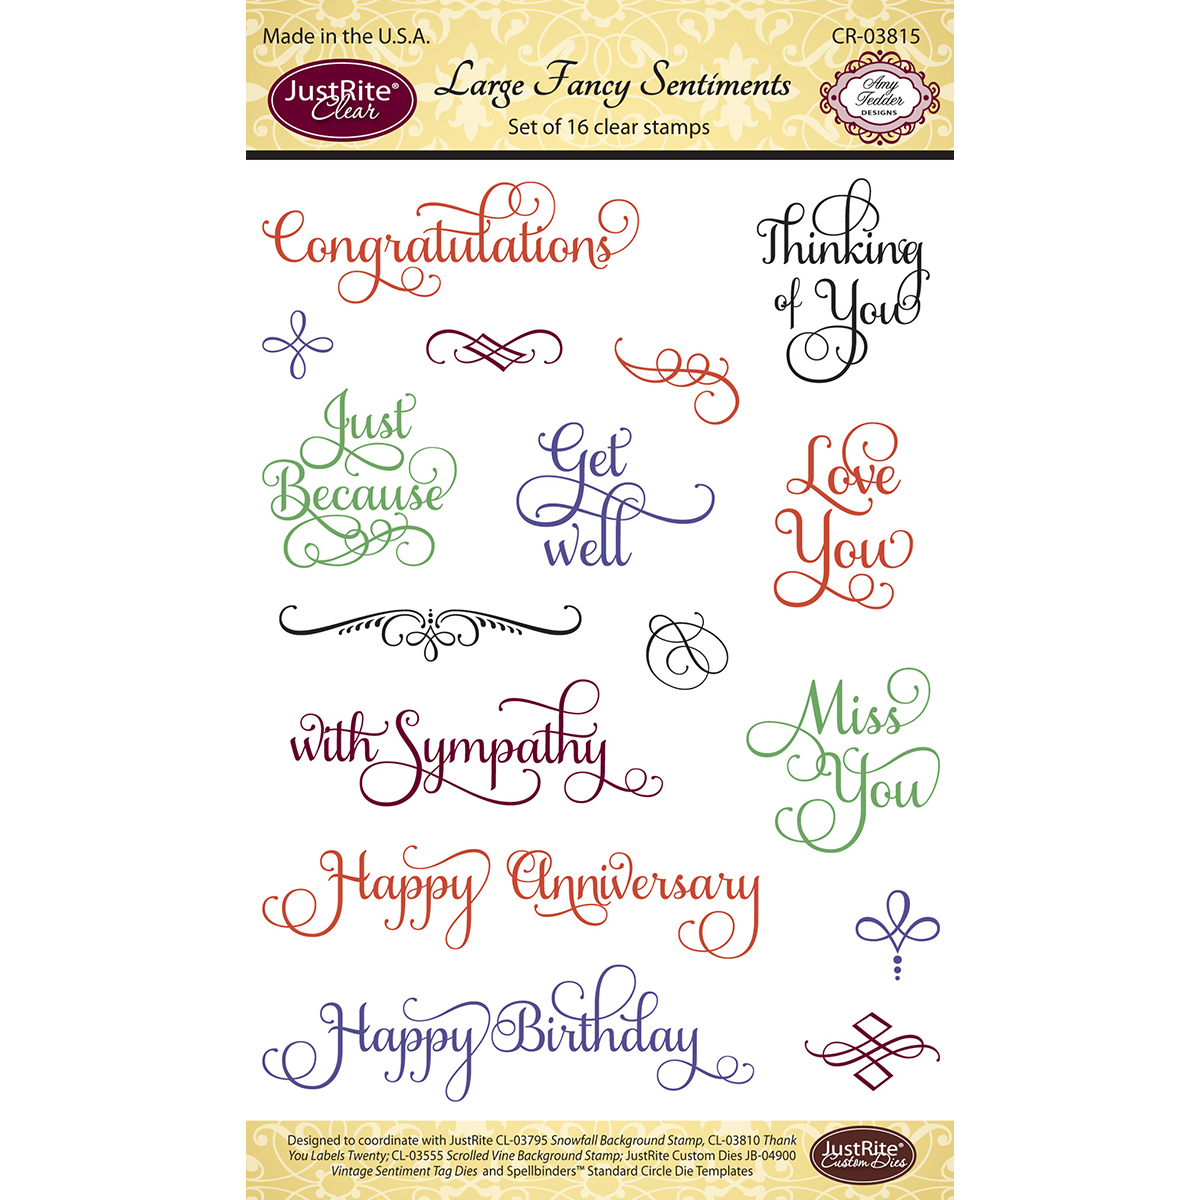 "JustRite Papercraft Clear Stamps 4""X6"" Large Fancy Sentiments"